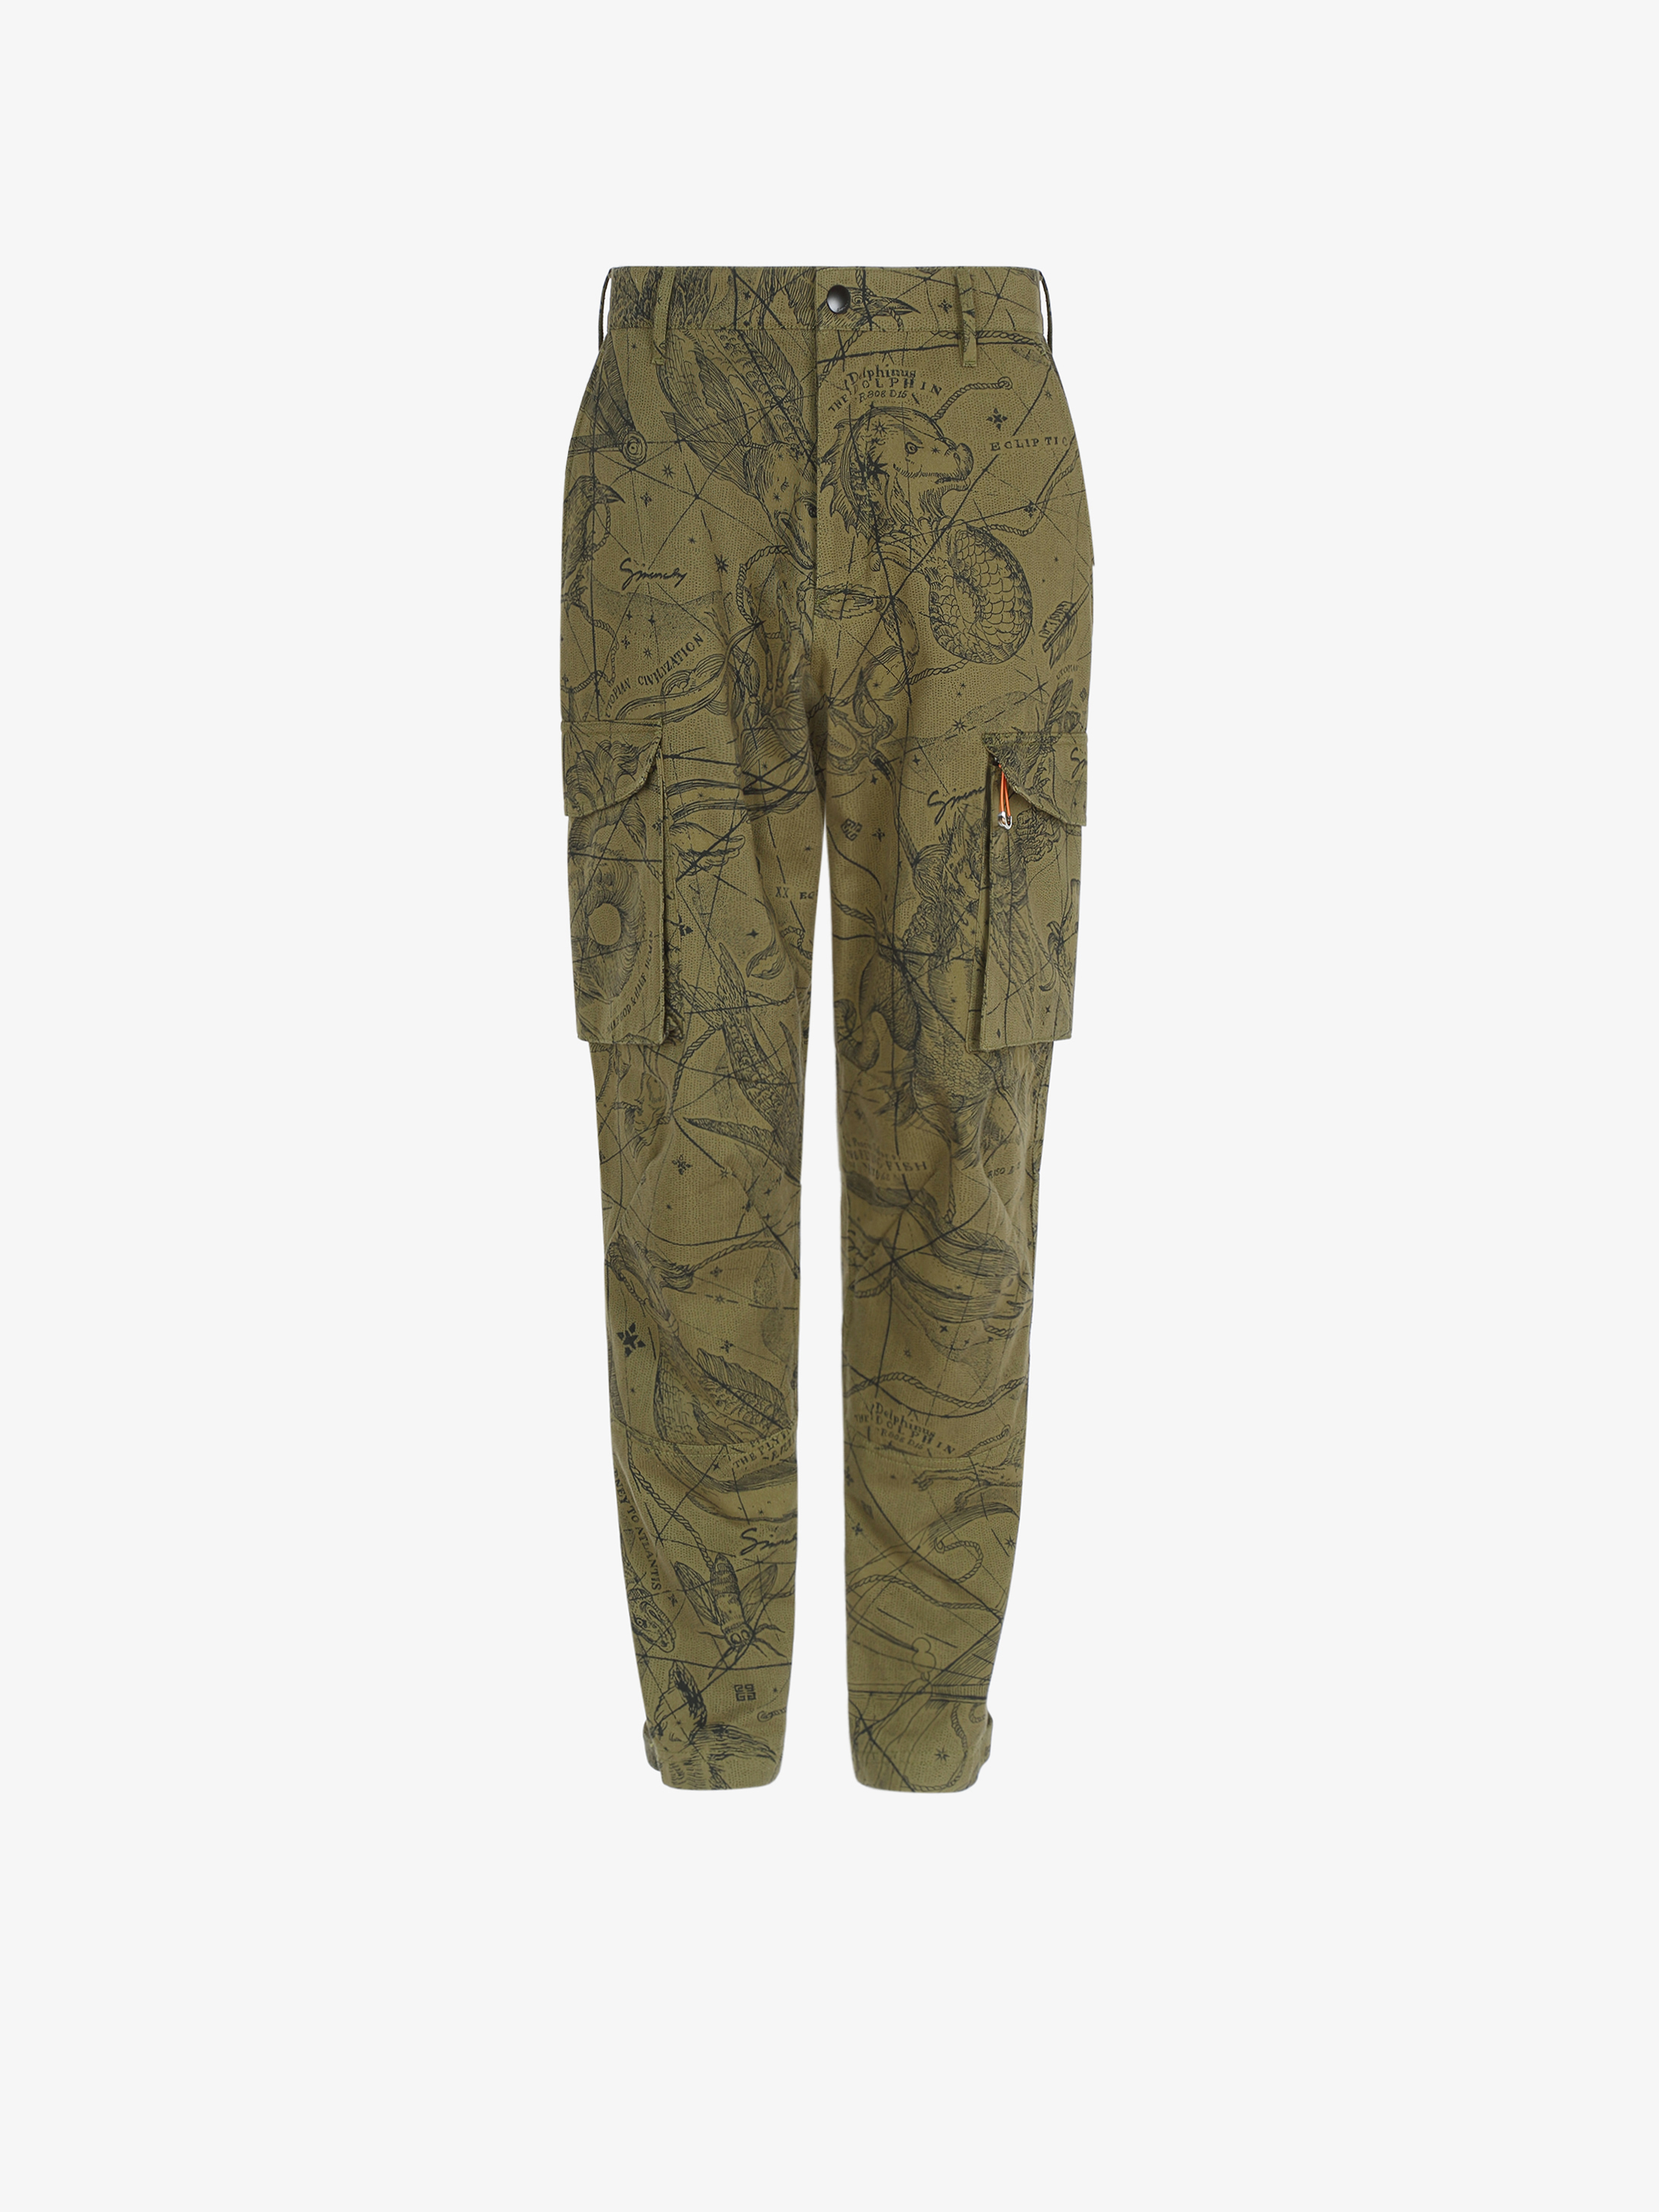 Astral printed multipockets cargo pants